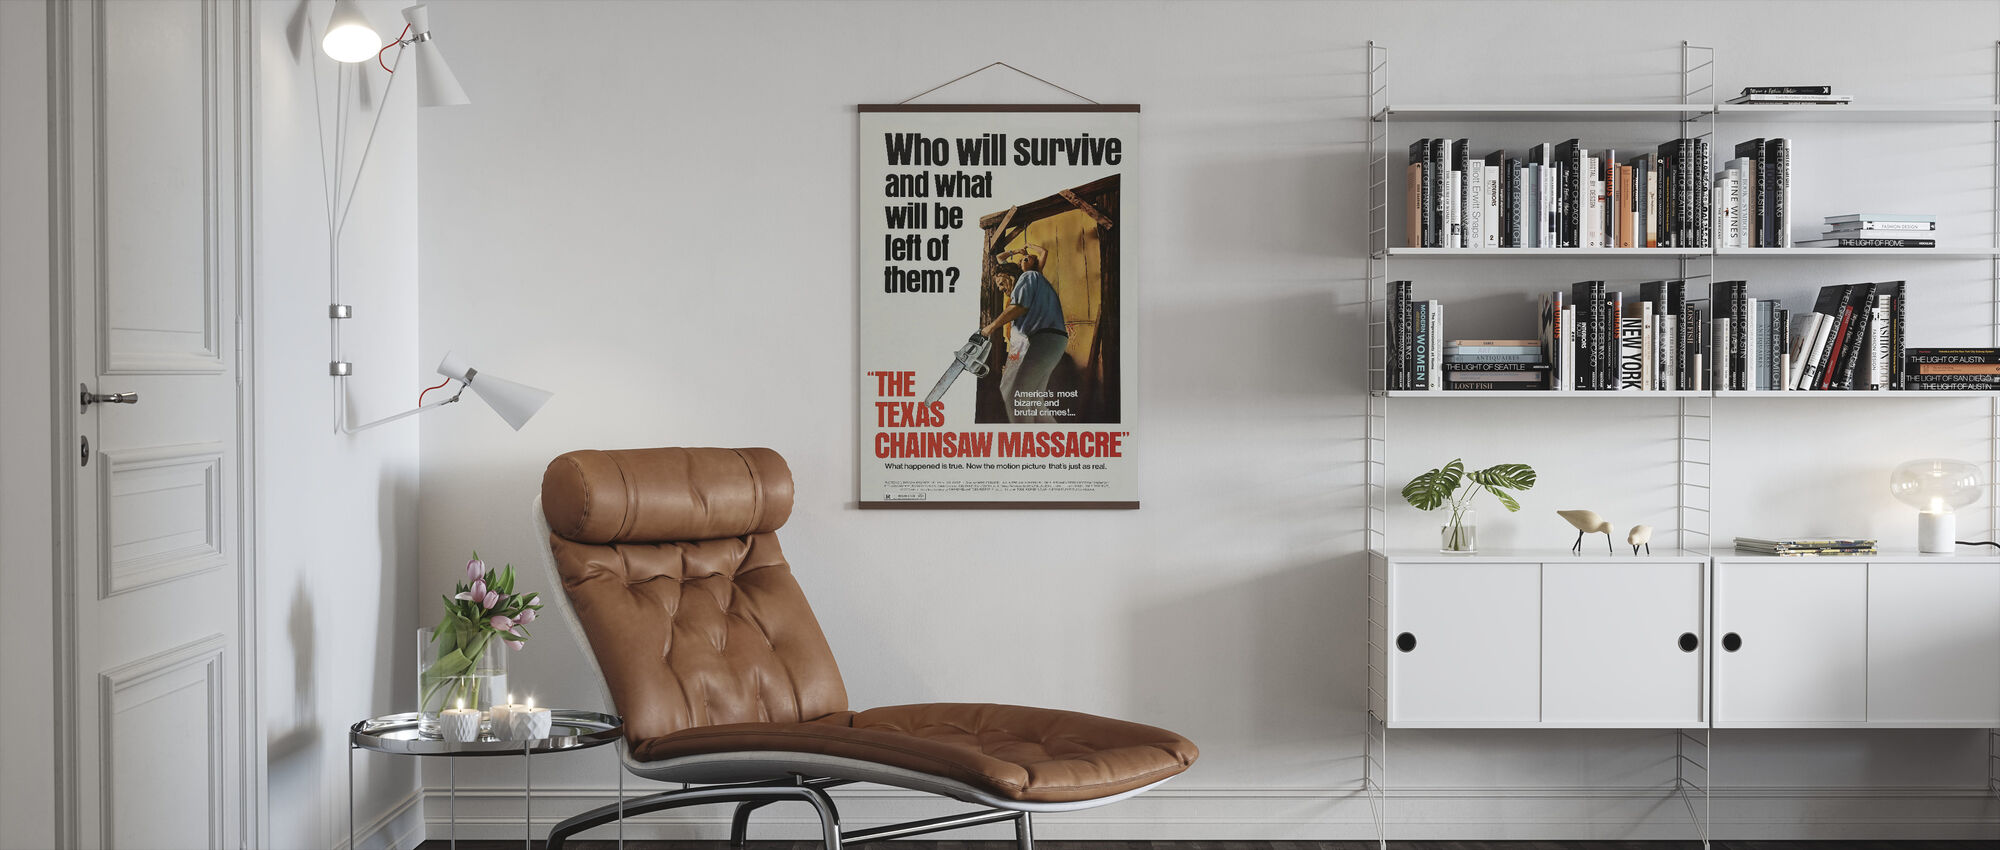 Texas Chainsaw Massacre - Poster - Living Room